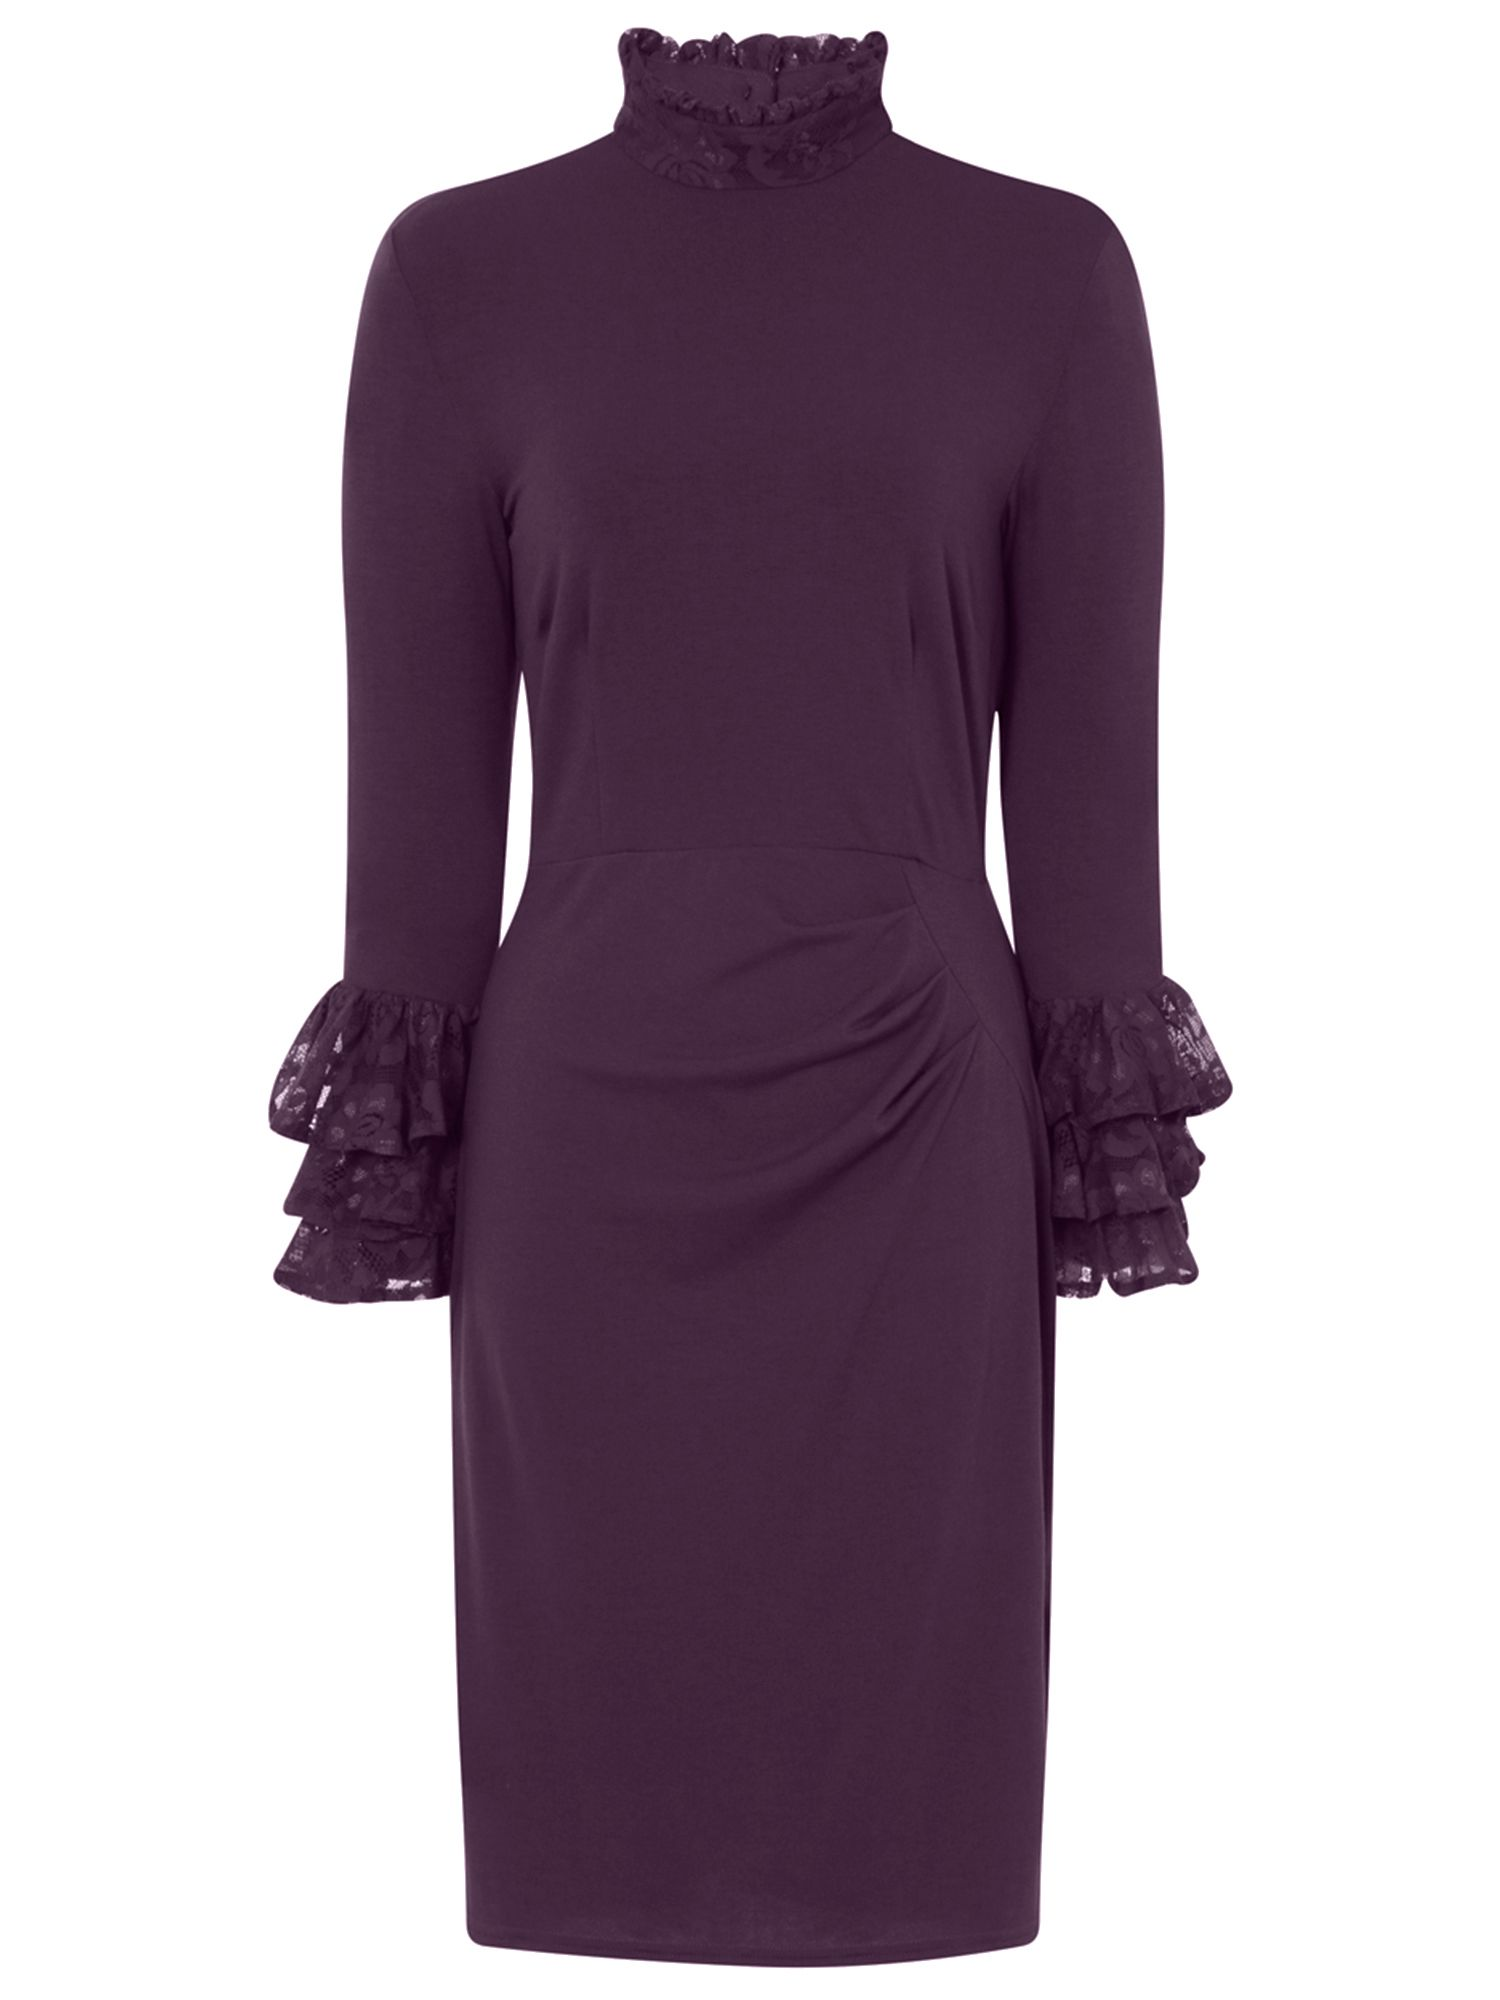 HotSquash Clever Fabric HighNeck Lace Detail Dress, Damson